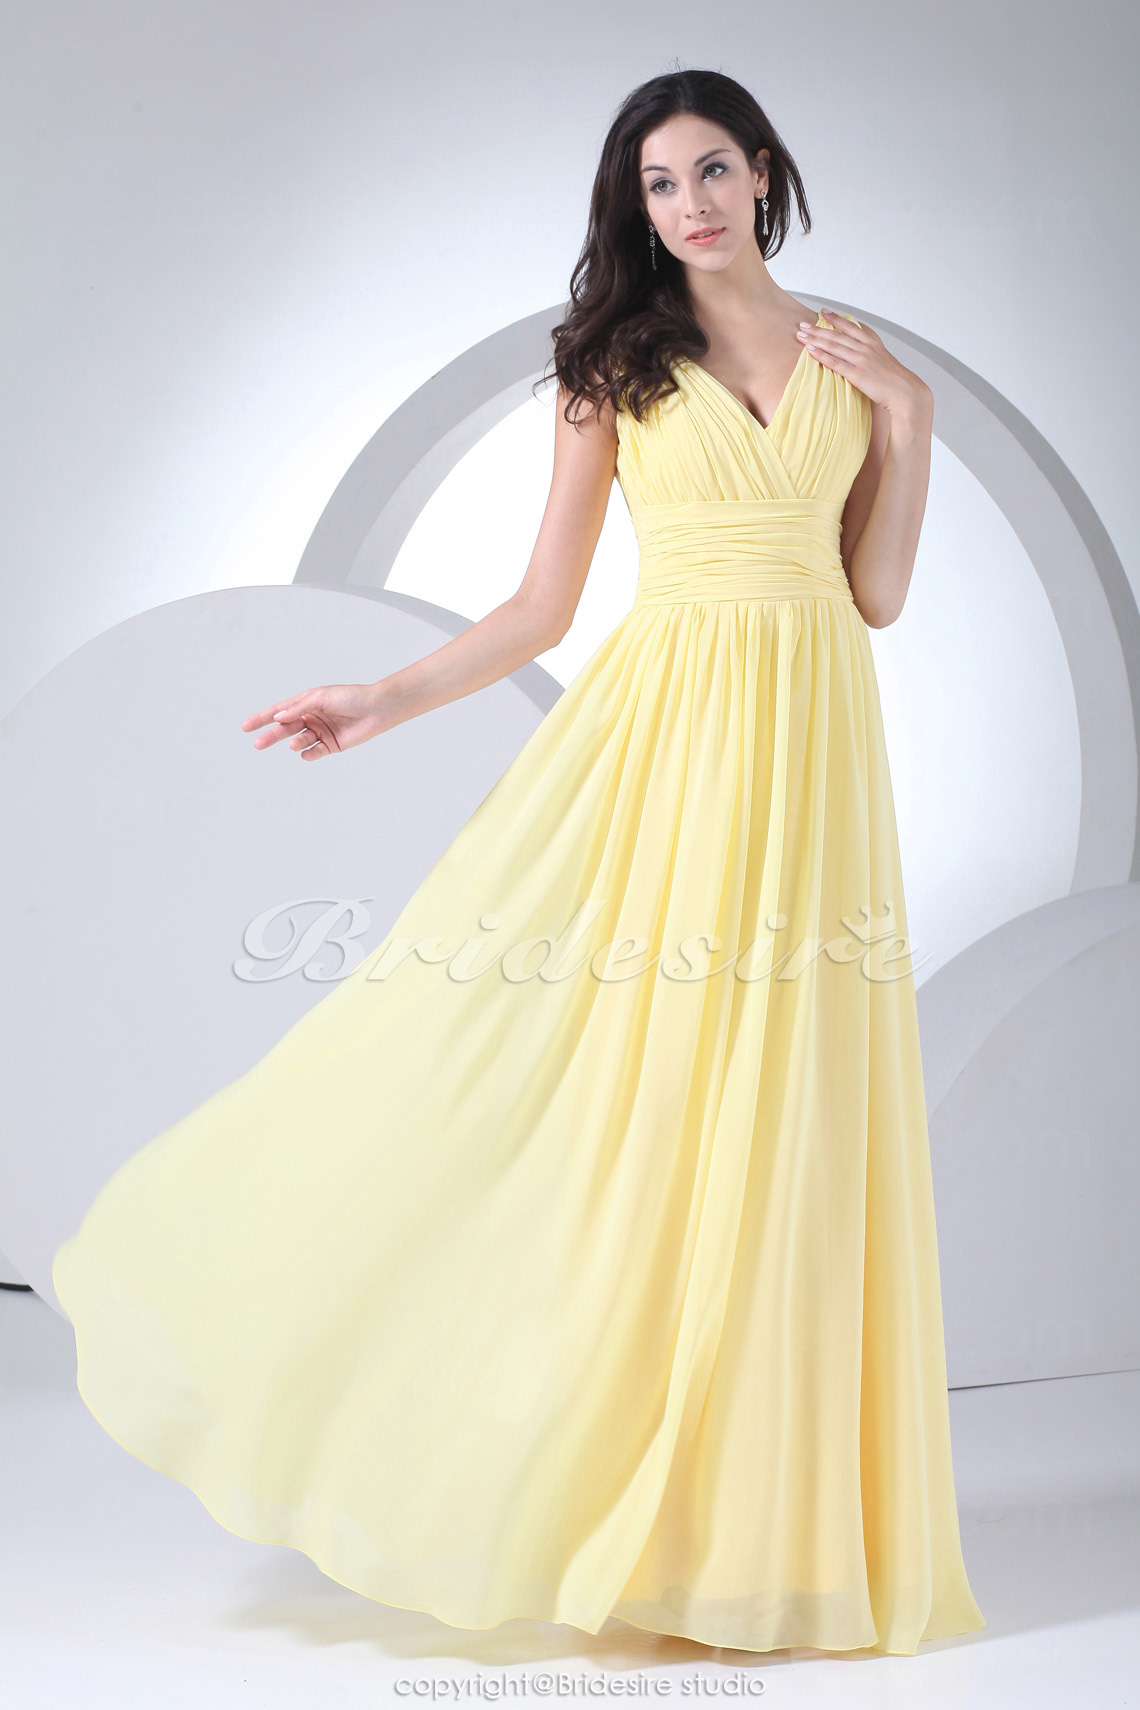 Sheath/Column V-neck Floor-length Sleeveless Chiffon Bridesmaid Dress